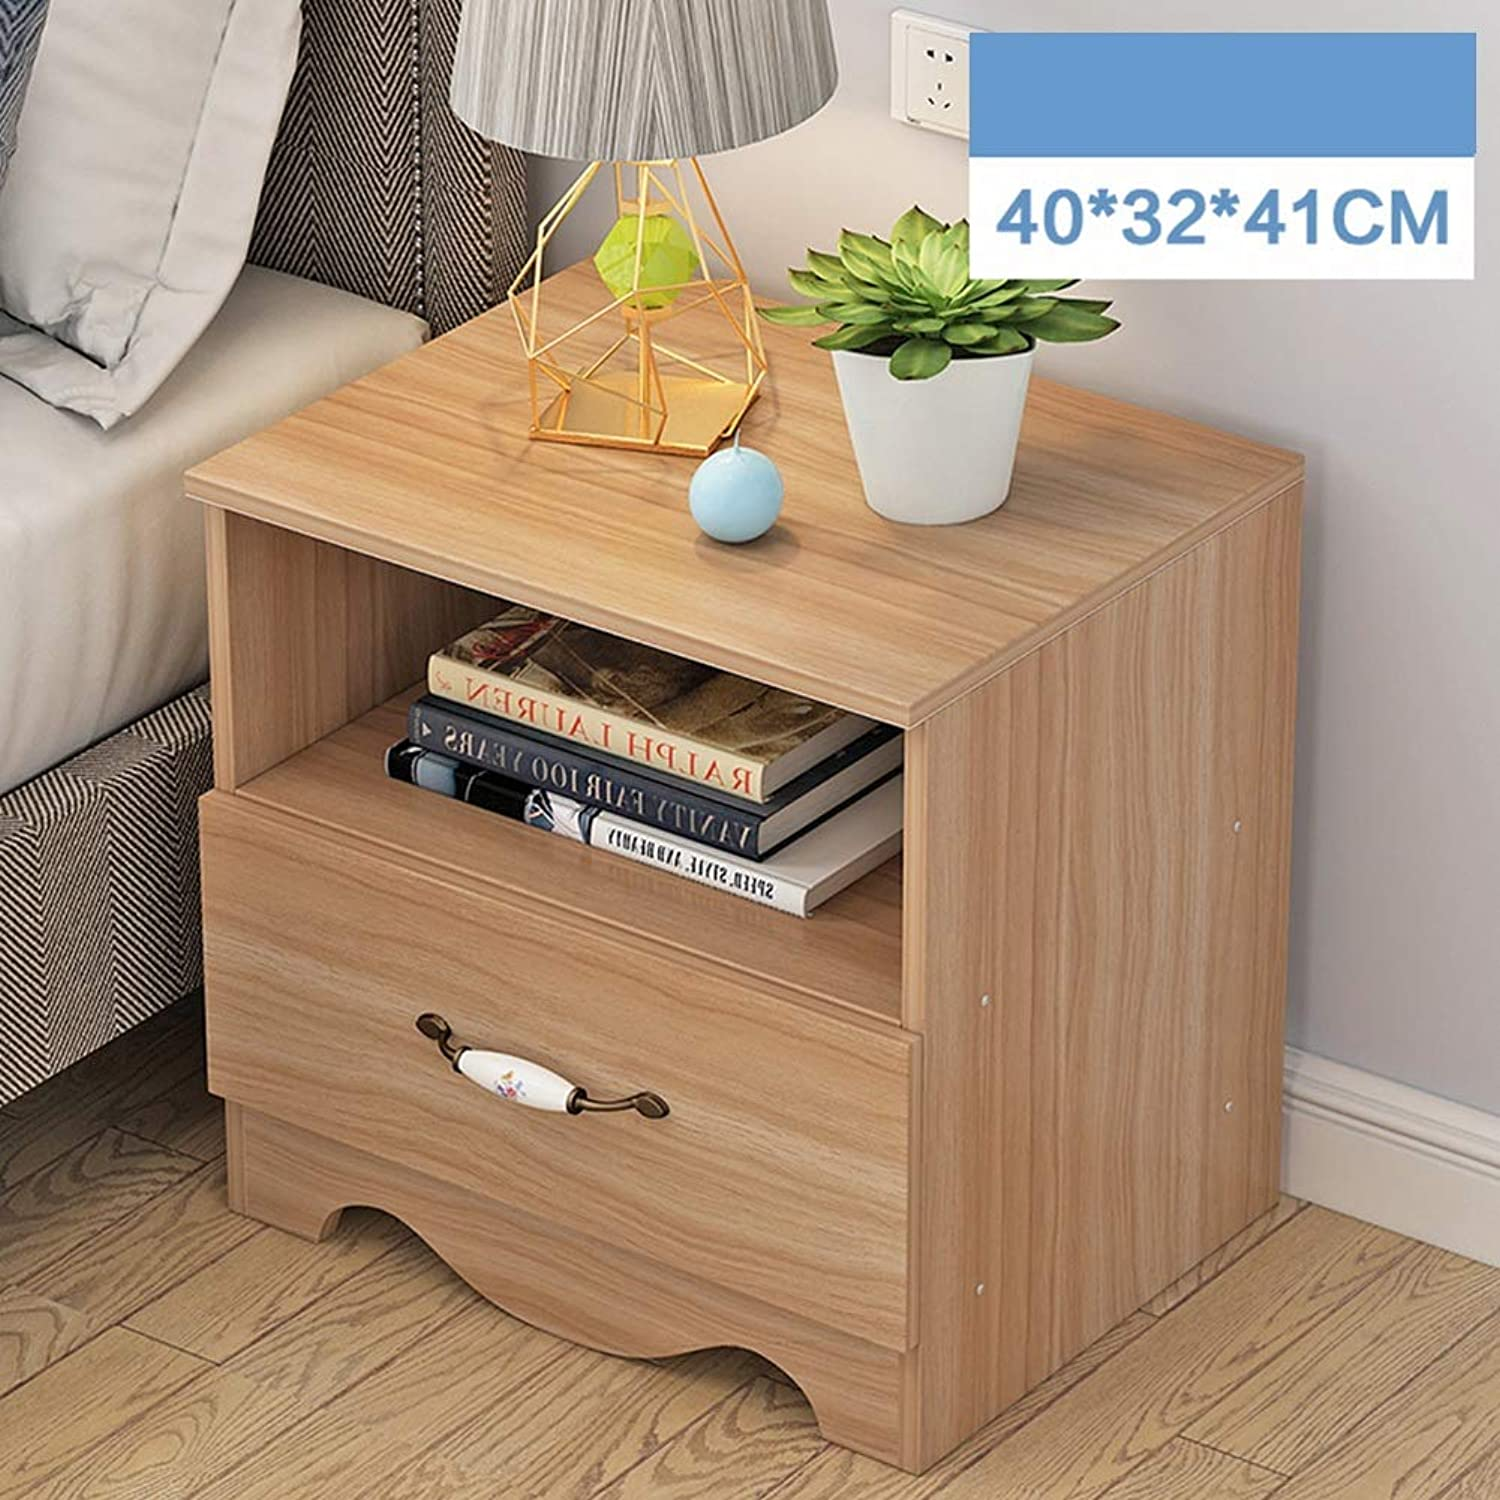 Coffee Table Bedside Table, with 1 Drawer Diversified Storage One-Piece Cabinet Feet Simple Side Cabinet, Student Dormitory Study (color   Shallow Walnut color)